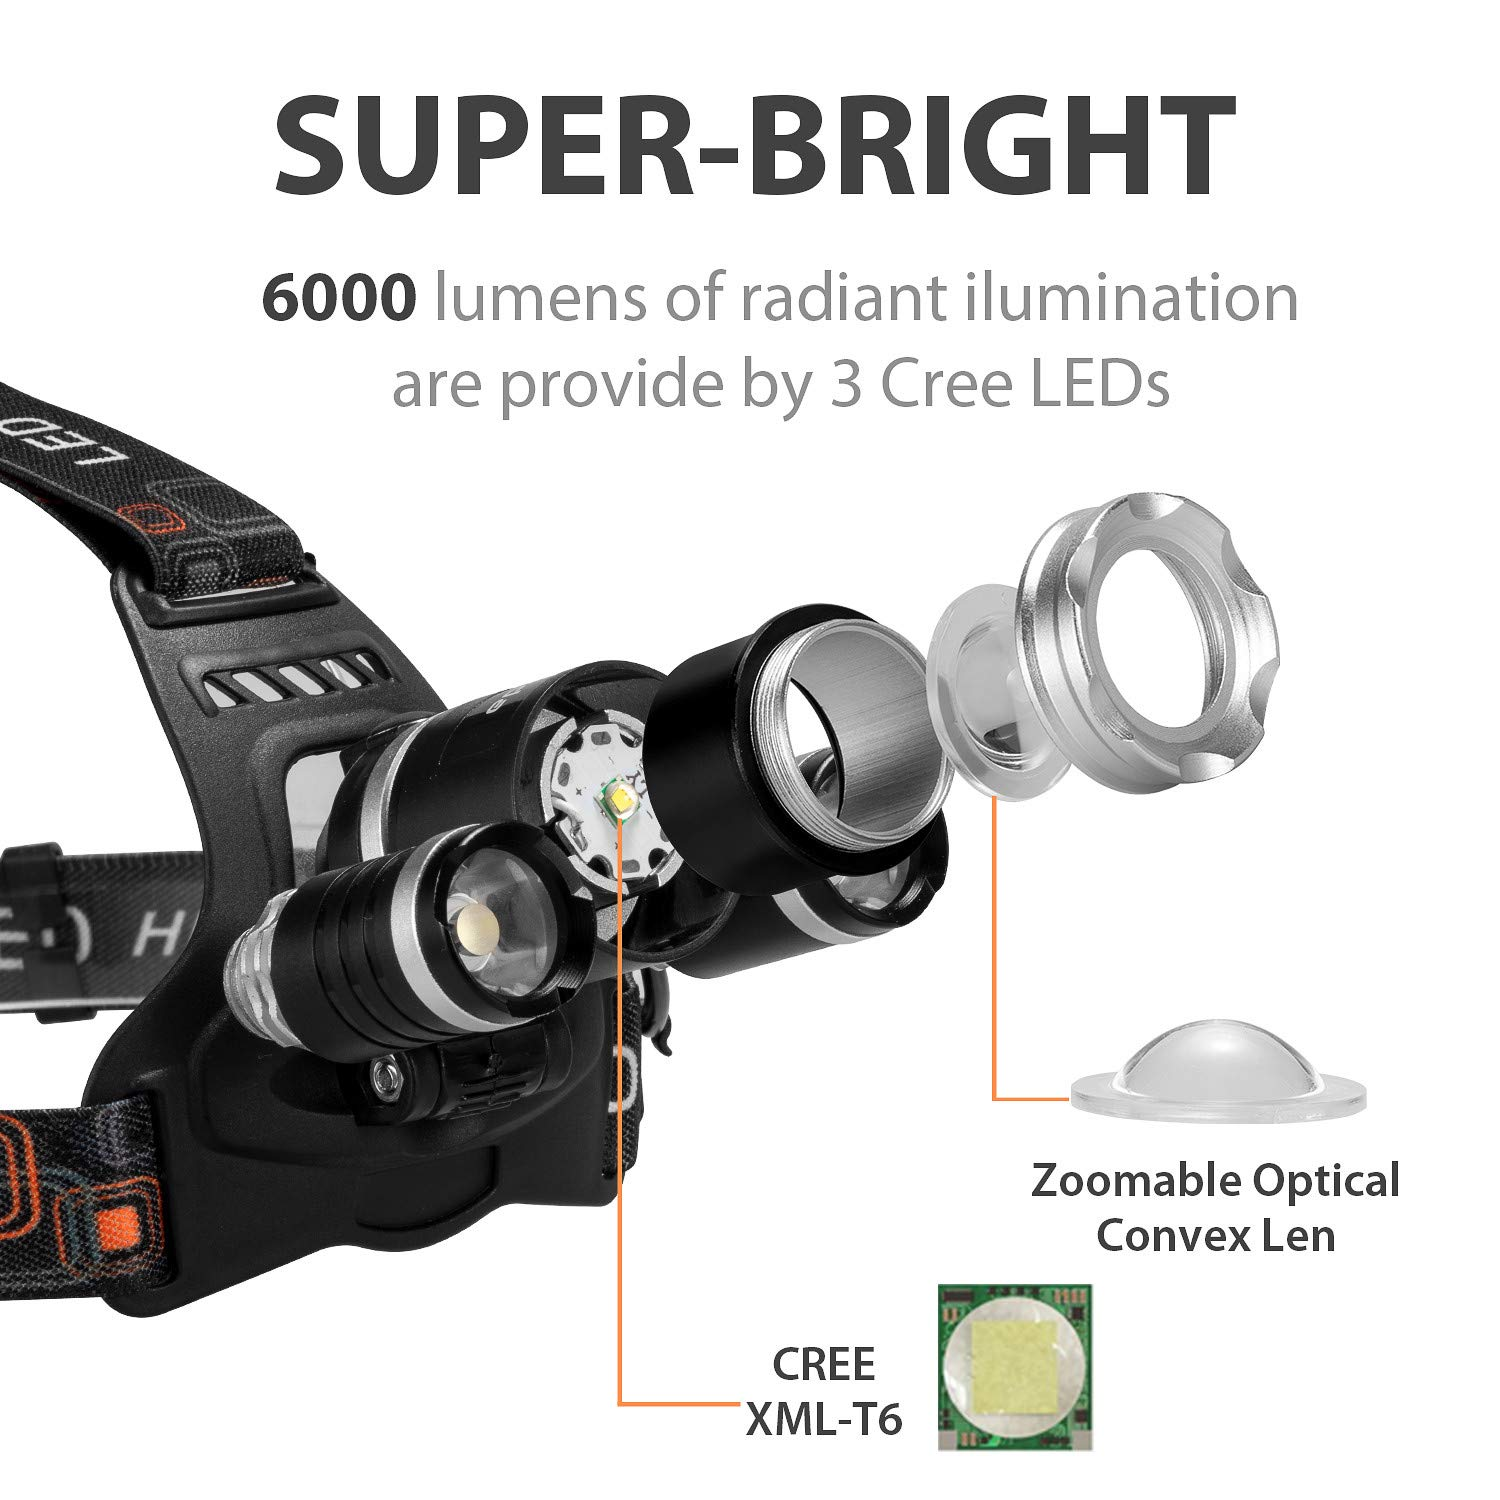 Brightest LED Headlamp, Snorda Zoomable Head Light with 6000 Lumen CREE LED, 4 Modes for Camping Fishing with 18650 Rechargeable Batteries by Snorda (Image #3)